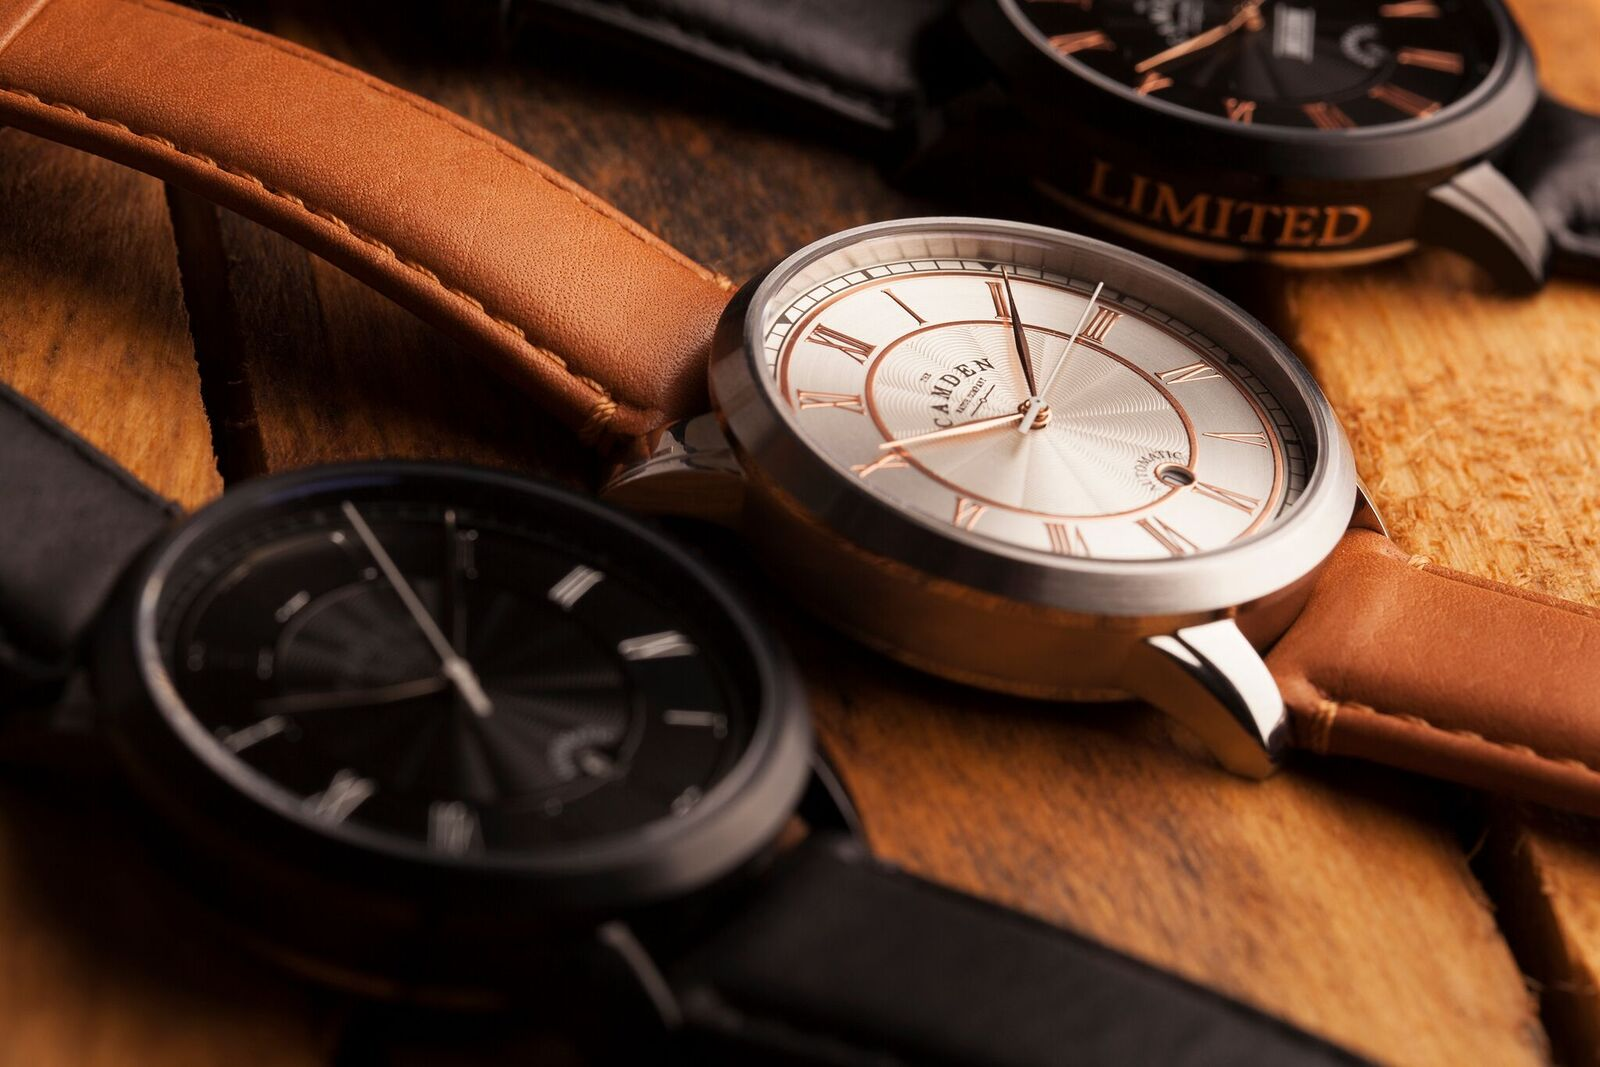 ec2b670b1 The Camden Watch Company No.29 Automatic Watches which are funding on  Kickstarter now take their design inspiration from the industrial history  of the ...